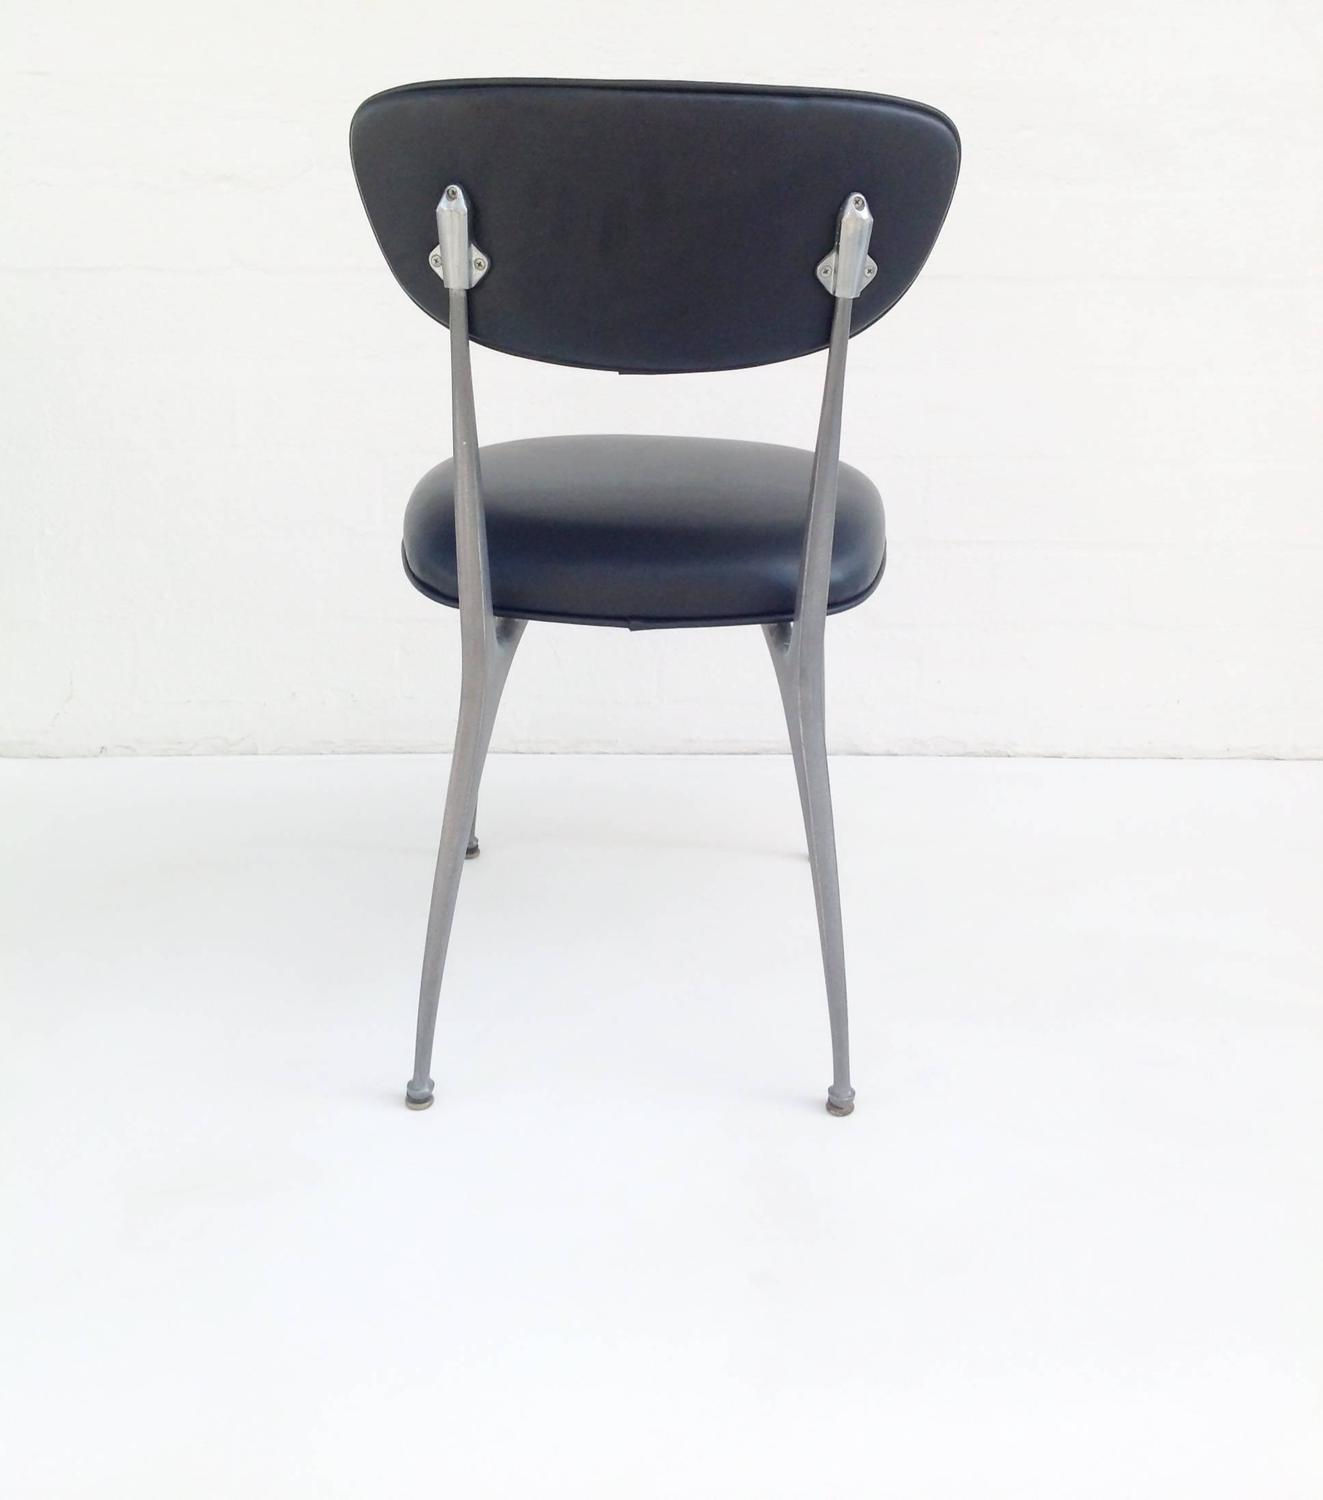 shelby williams chairs plus size folding six quotgazelle quot dining by for sale at